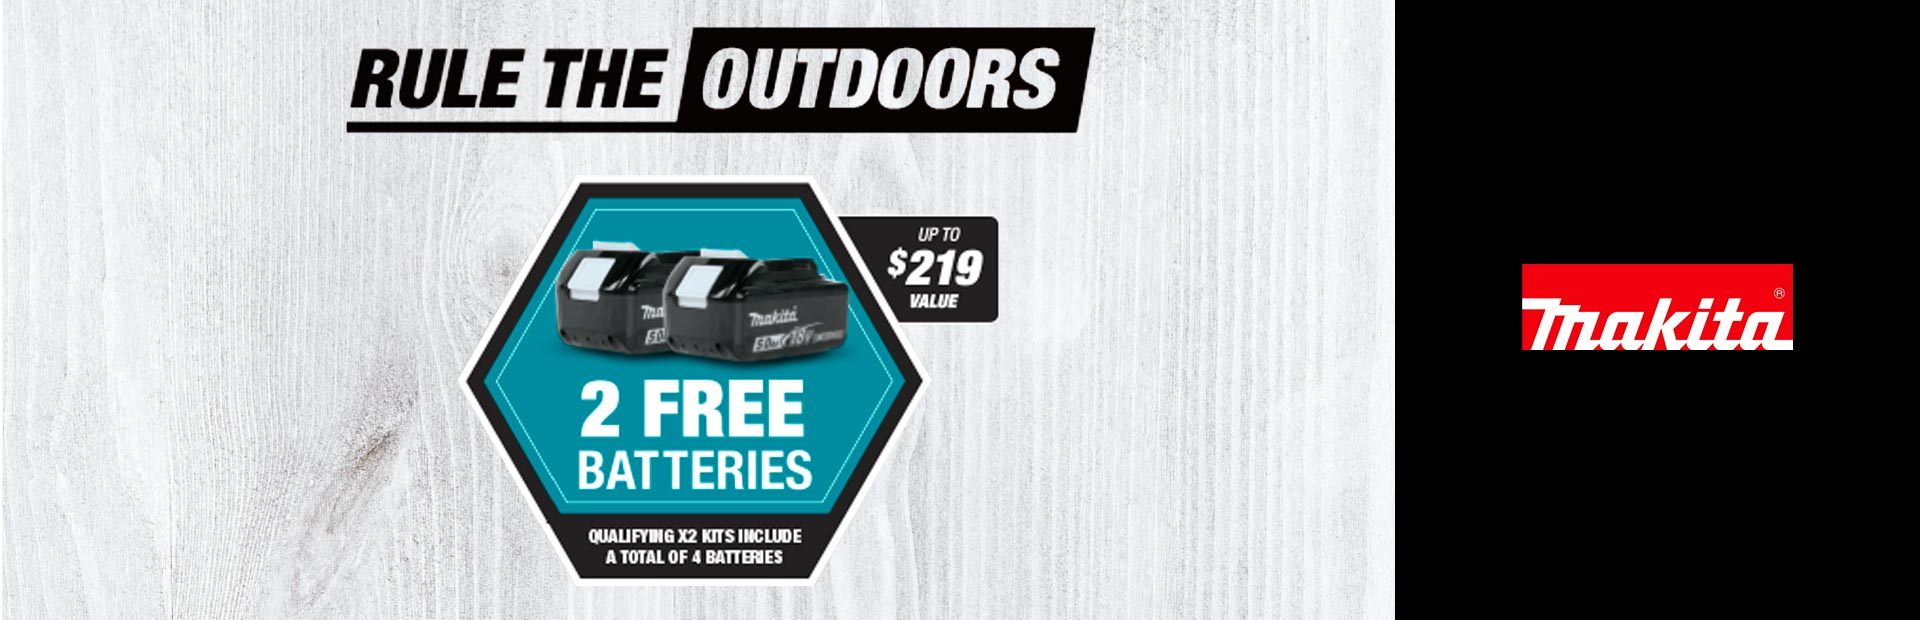 Makita: RULE THE OUTDOORS